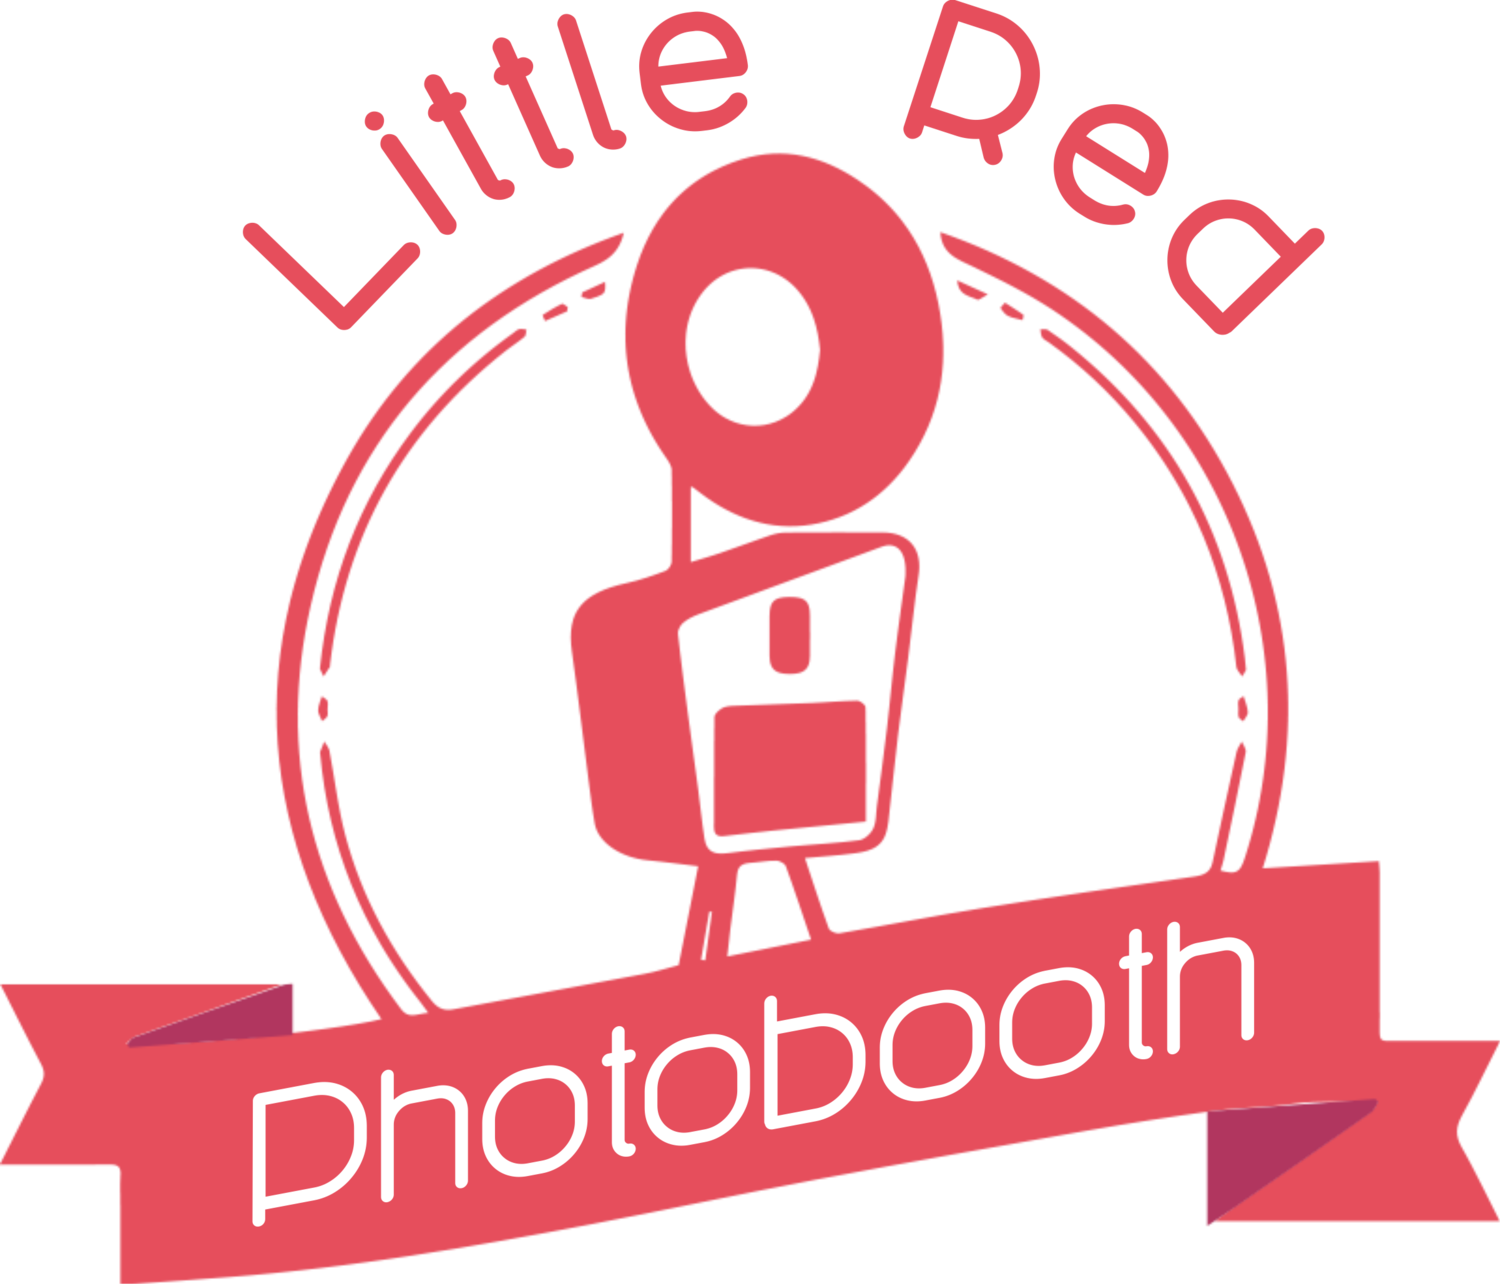 Little Red Photobooth